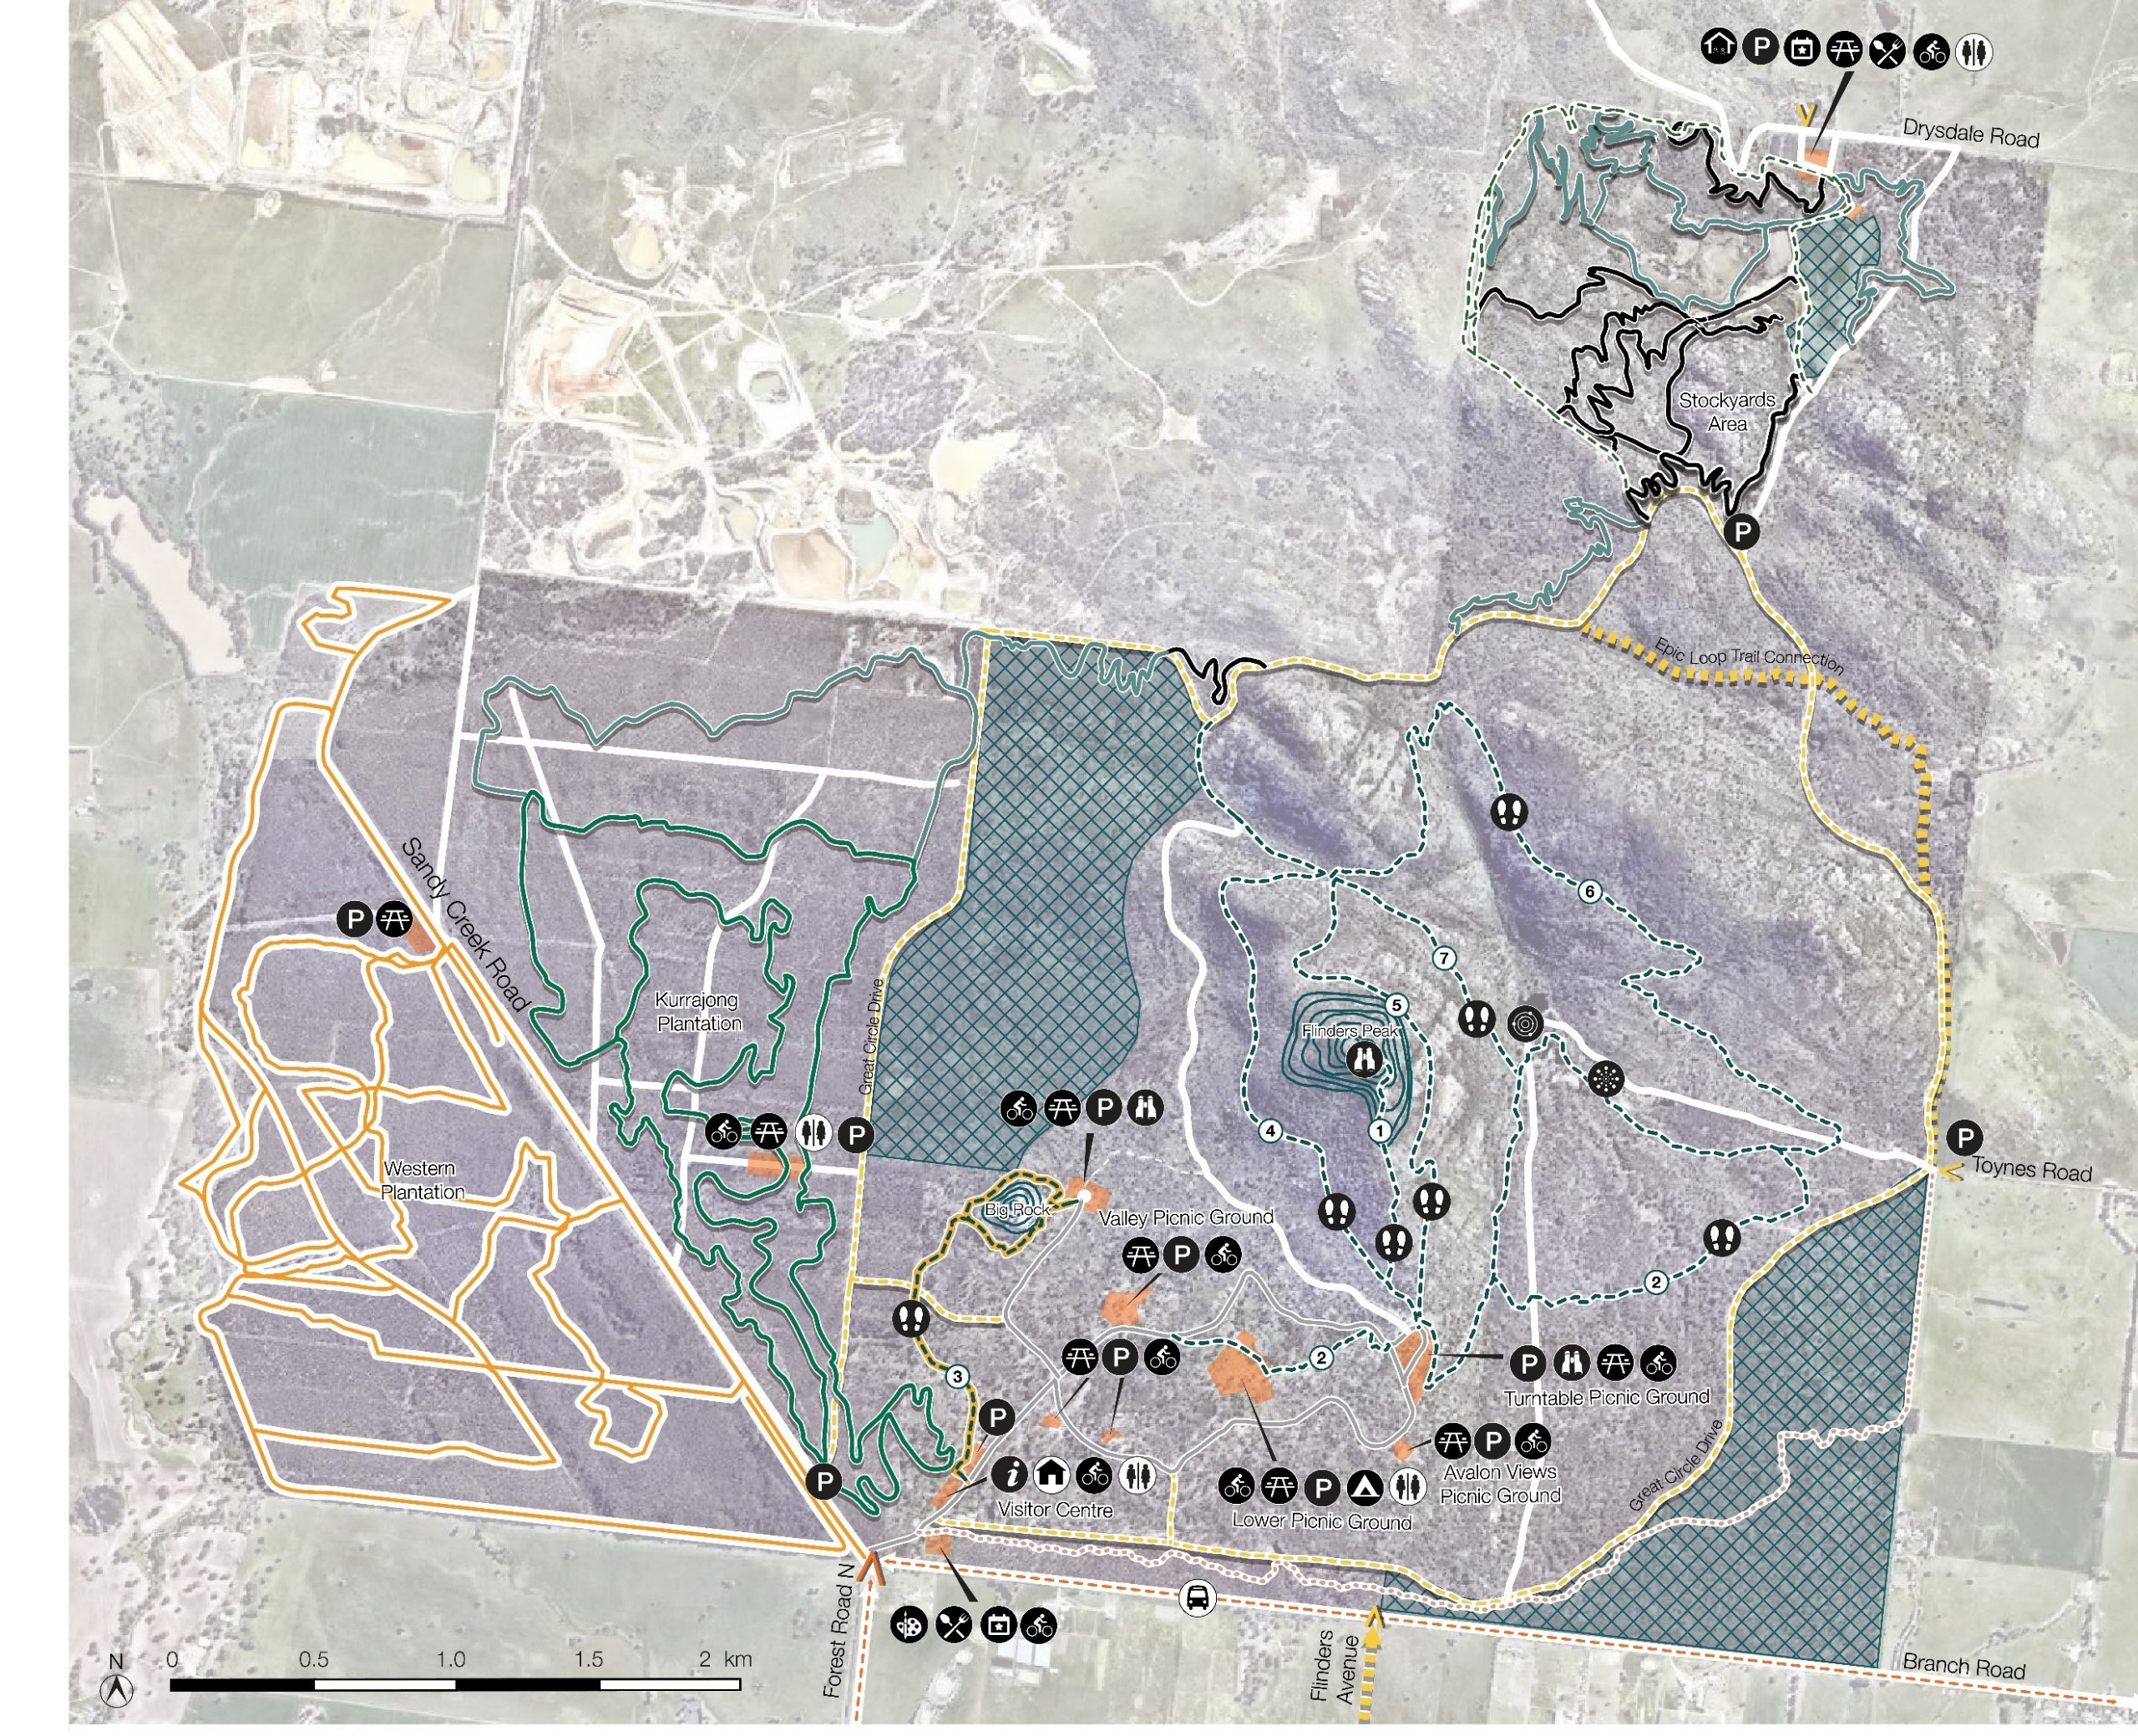 Interactive map of the You Yangs and the proposed initiatives